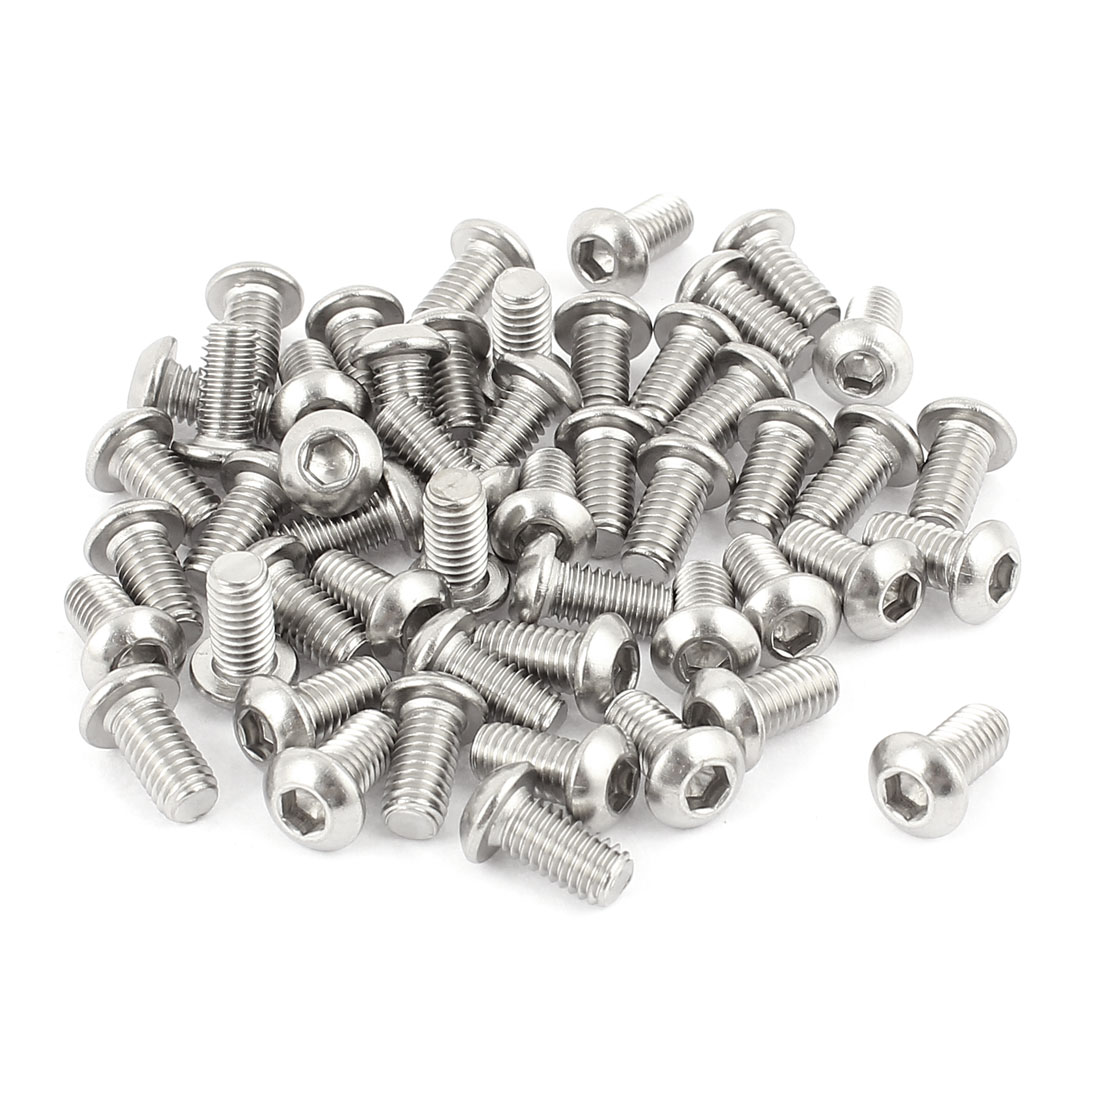 M6x12mm Stainless Steel Button Head Hex Socket Cap Screws Silver Tone 50Pcs